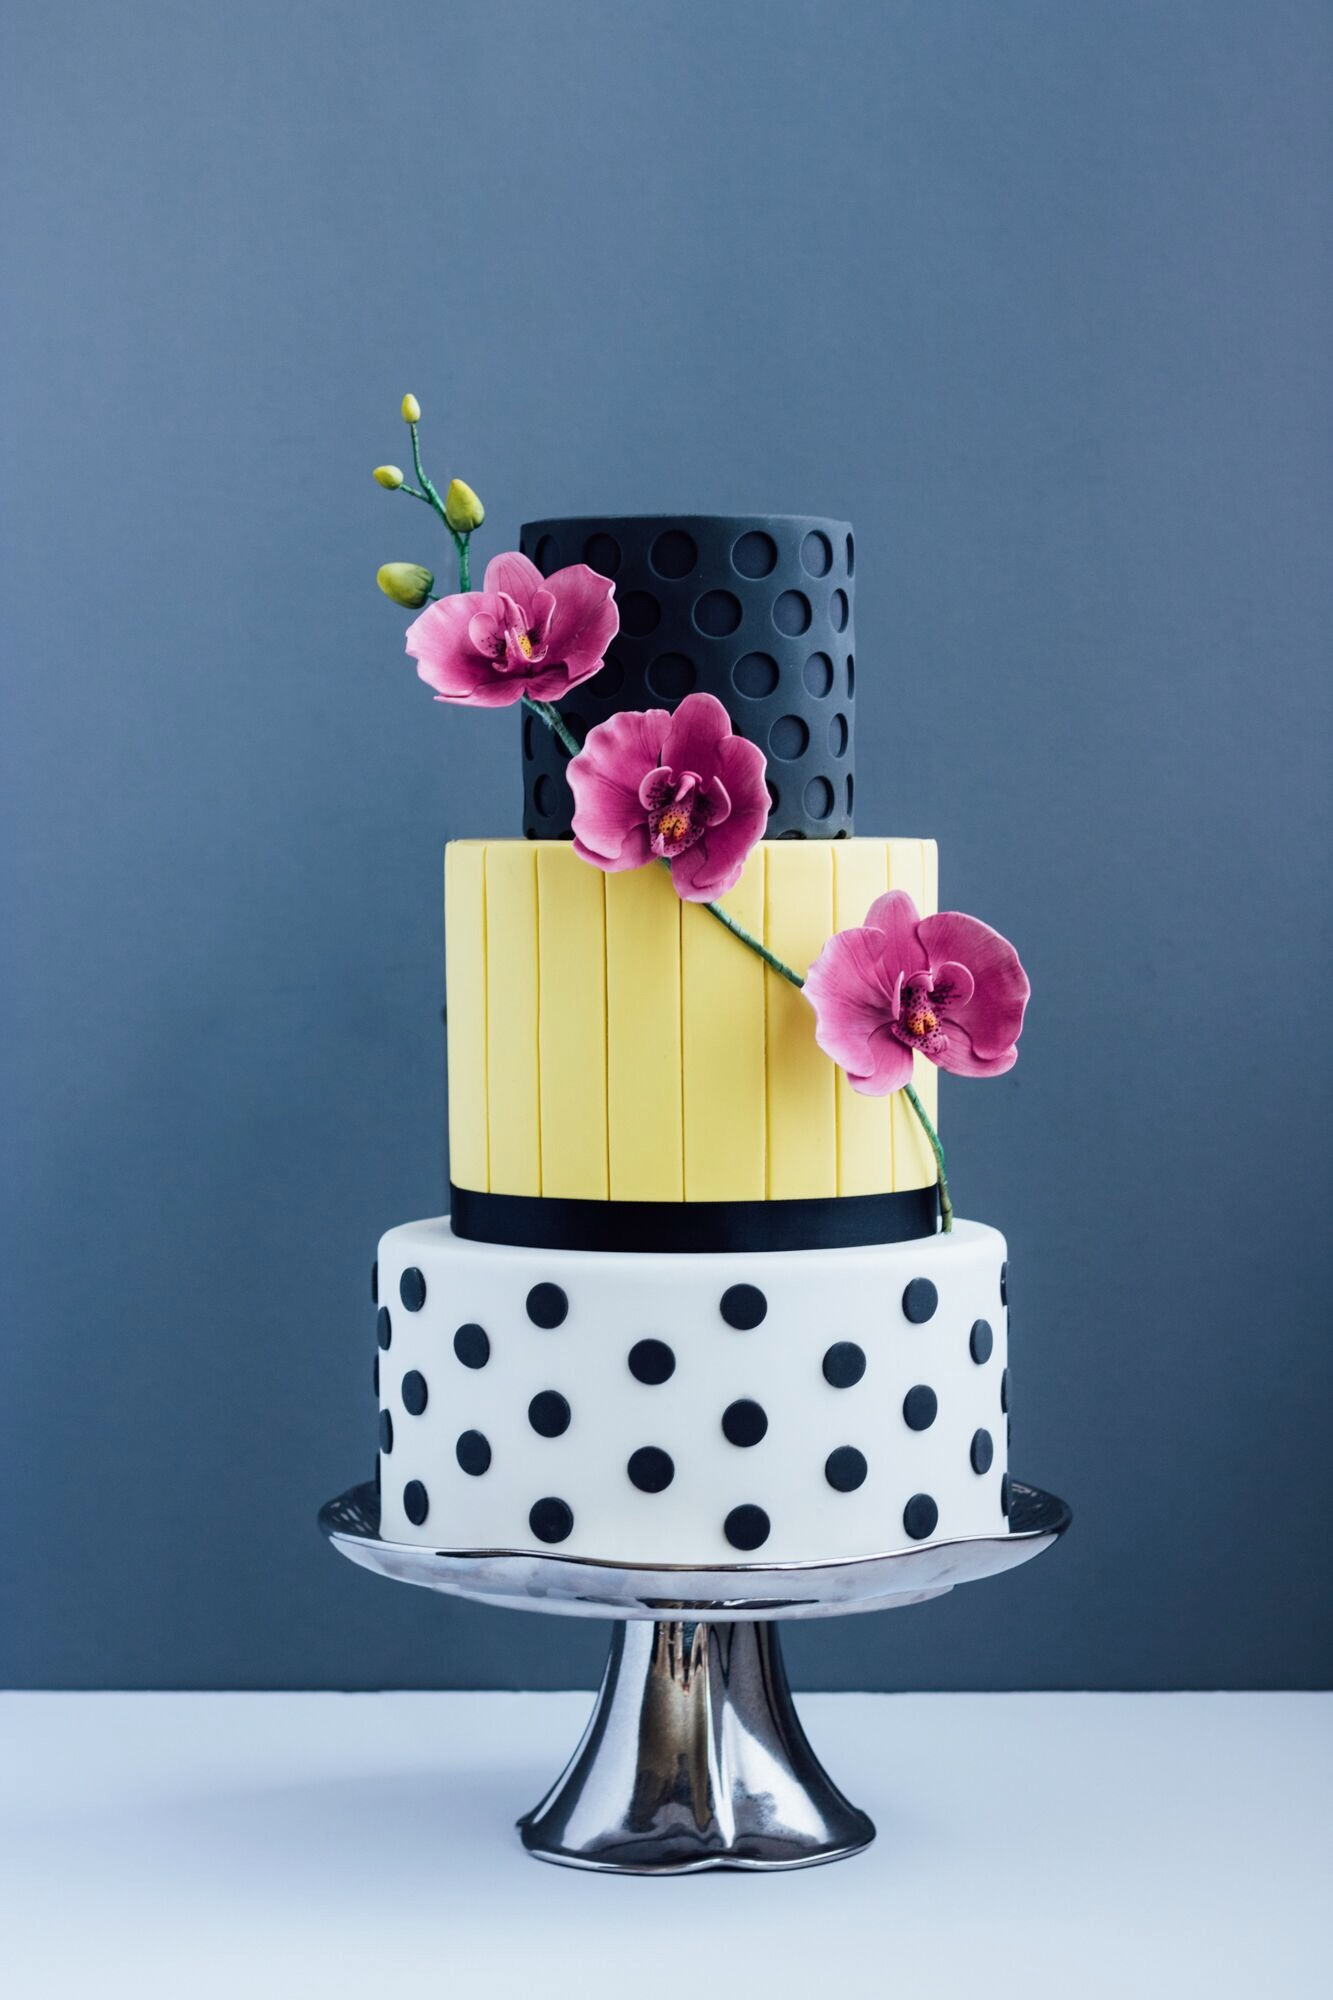 Black and white polka dot fondant wedding cake with yellow